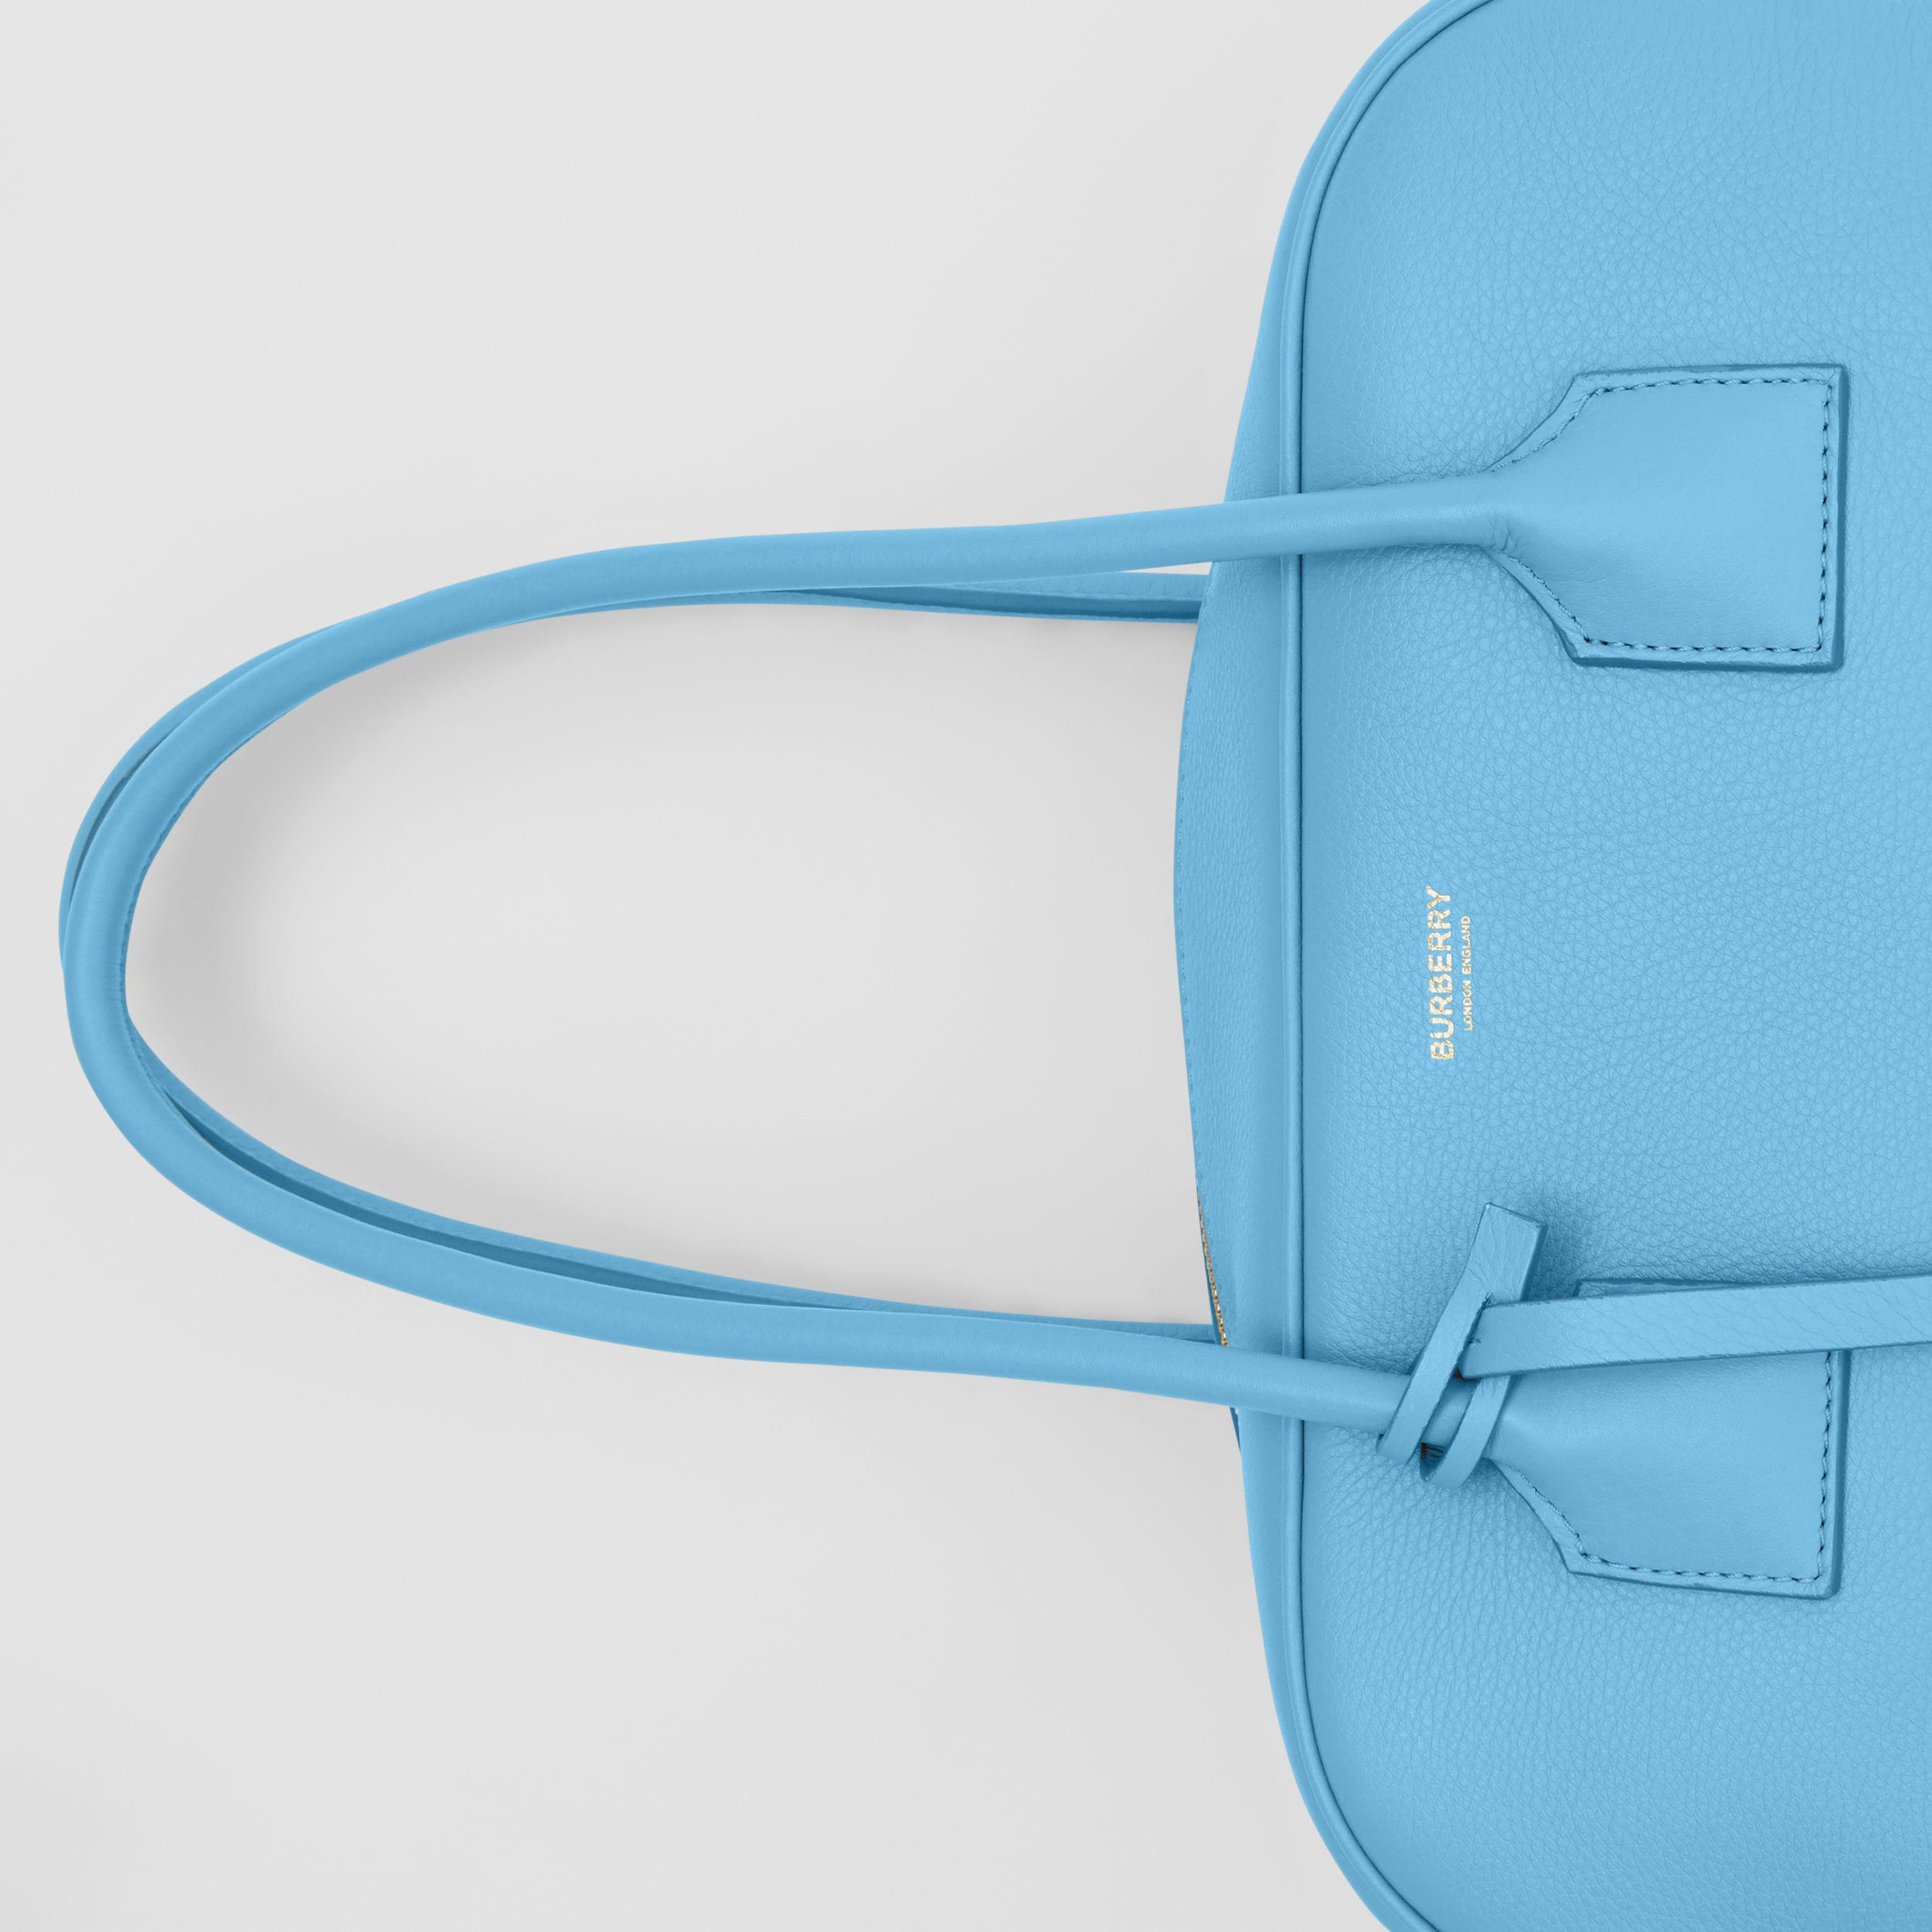 Medium Leather Half Cube Bag in Blue Topaz - Women | Burberry Australia - 2